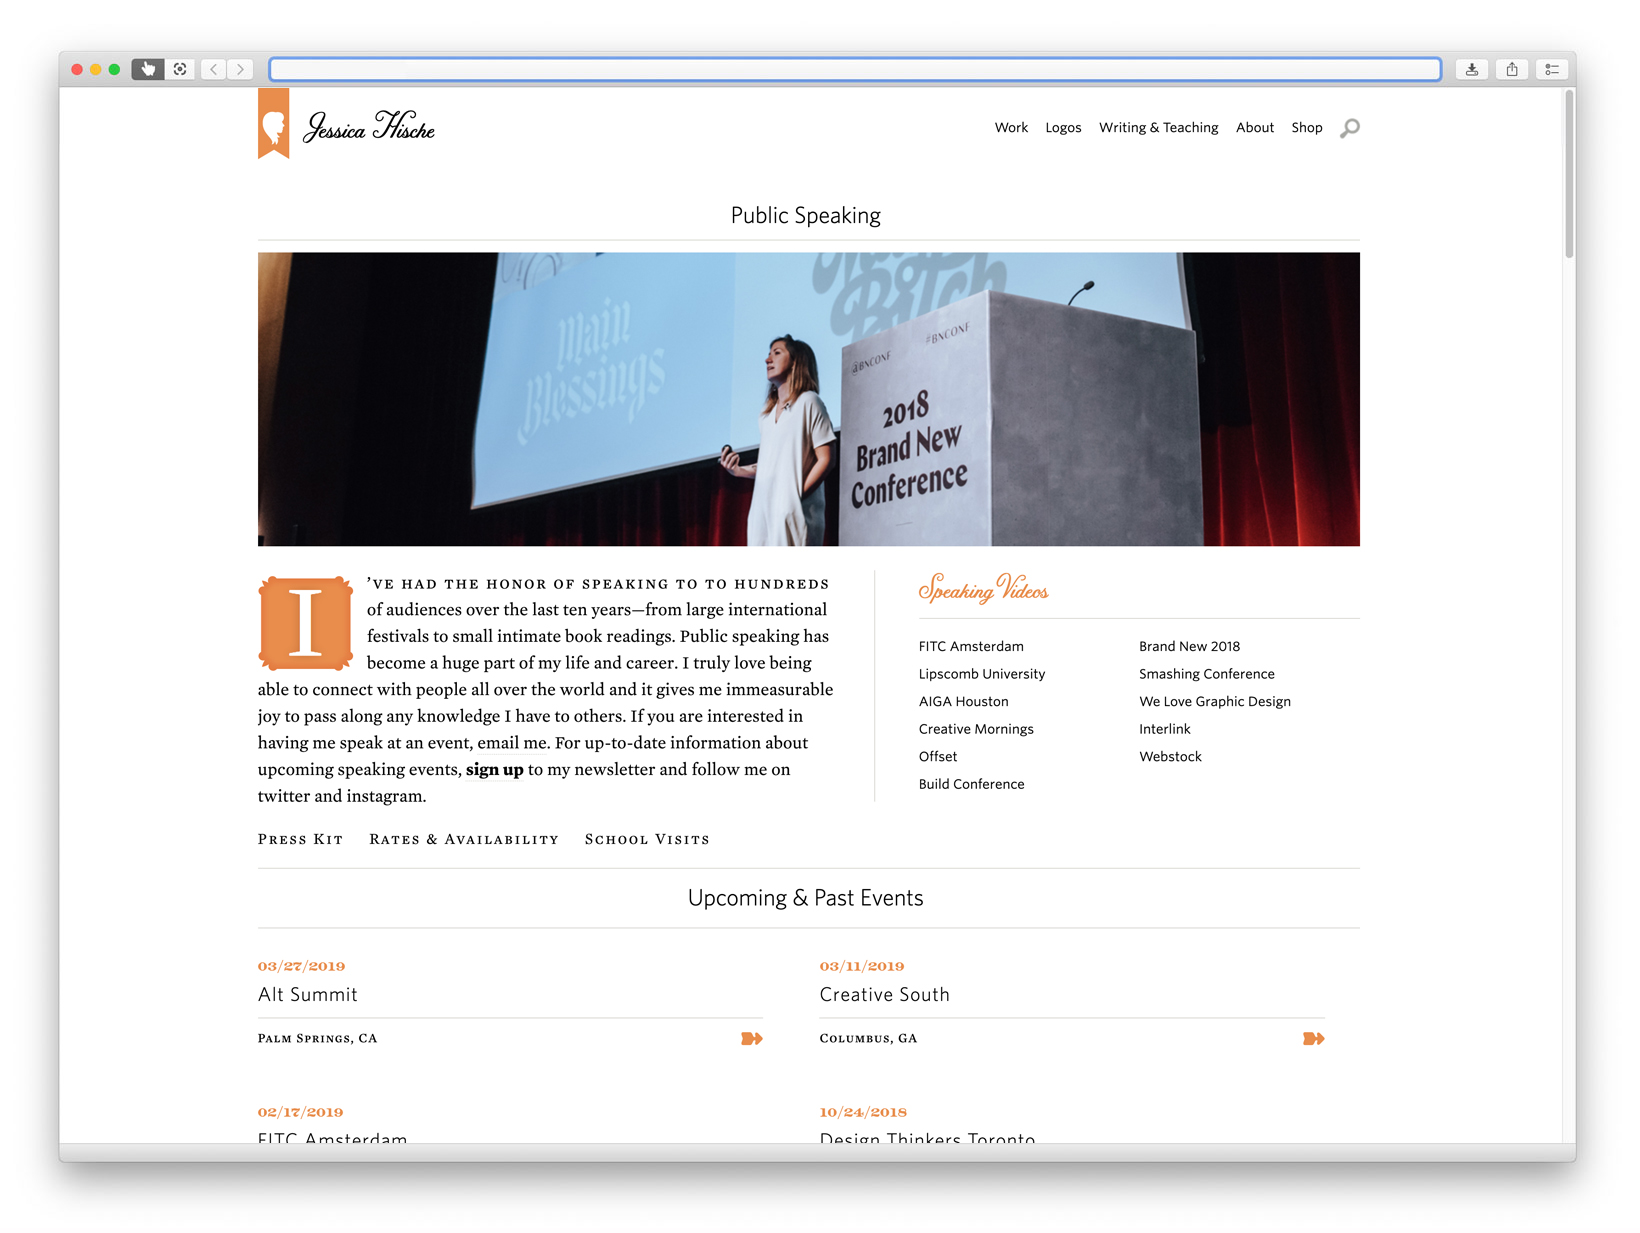 Web page featuring image of woman speaking on stage